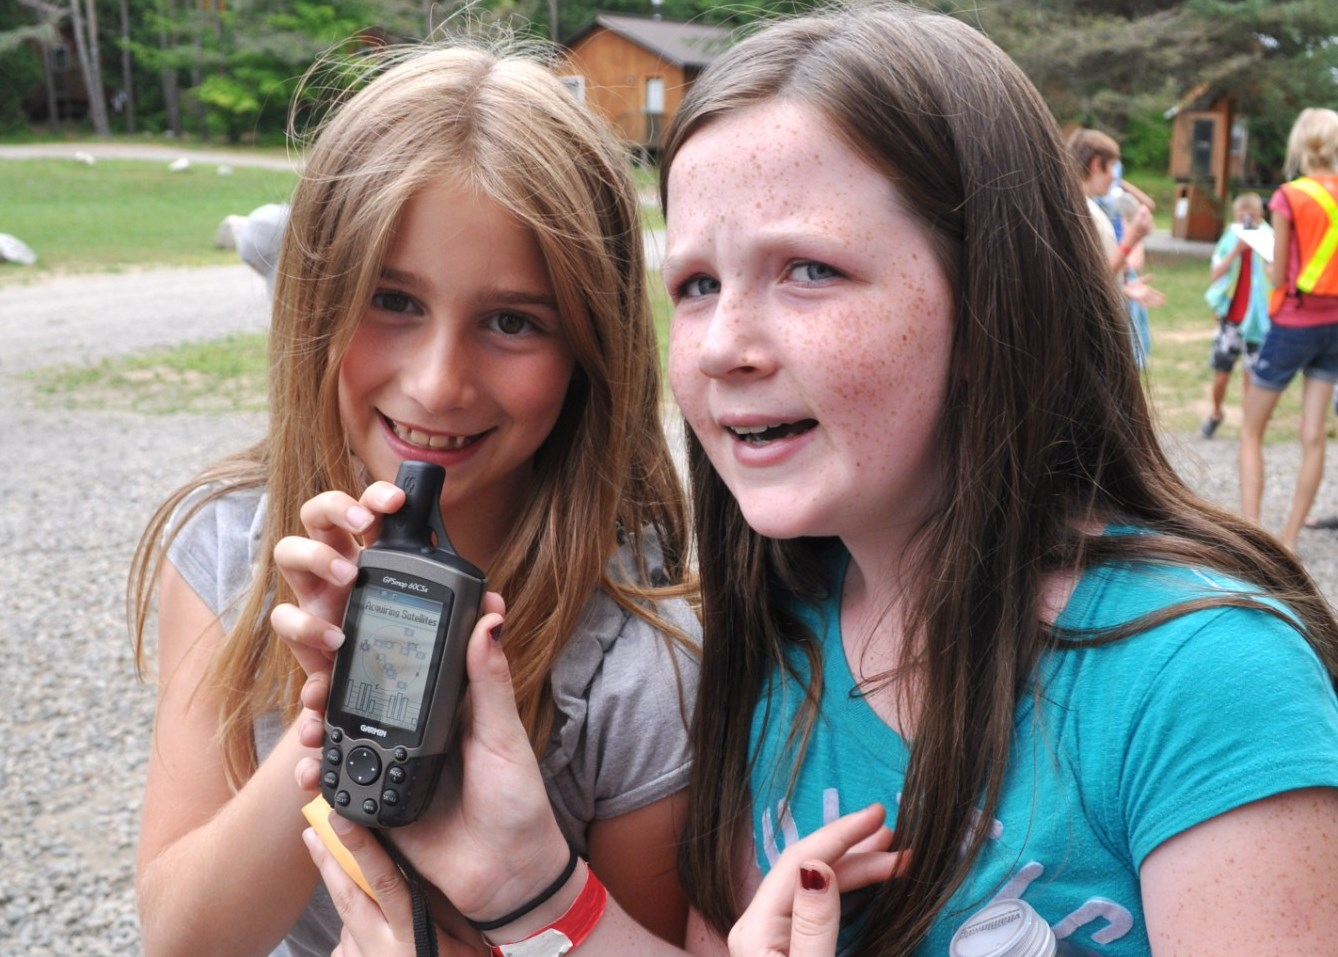 Campers using GPS during Geocaching at Christian Adventure Summer camp in Haliburton, Ontario